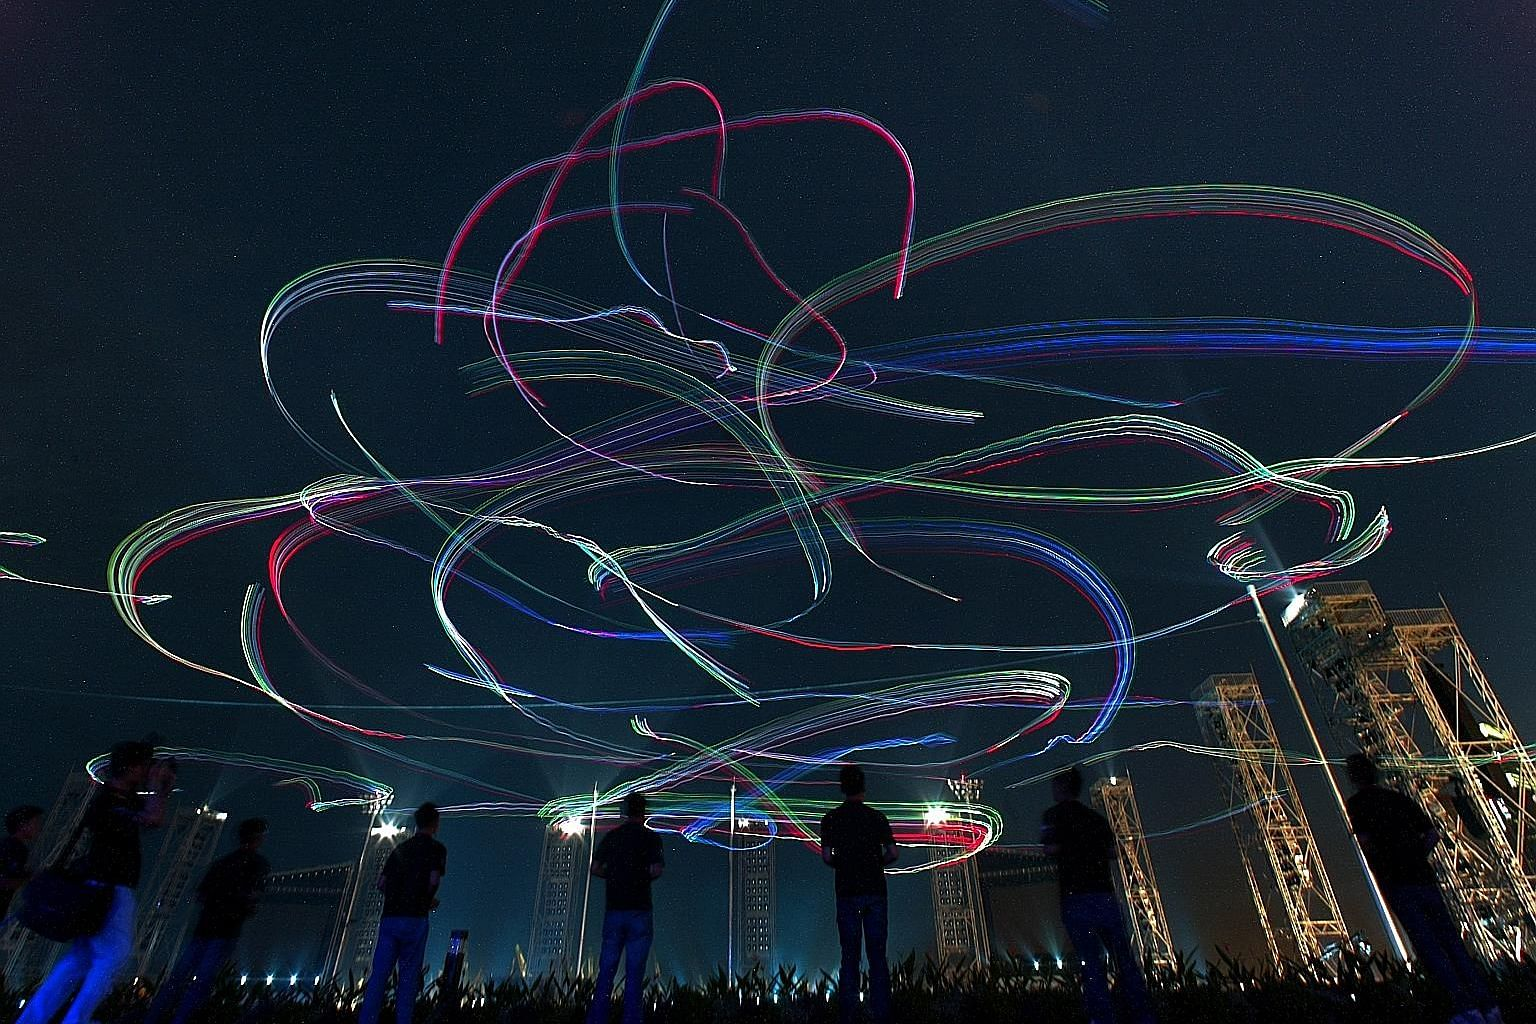 The night sky was transformed into a kaleidoscope of colours as radio-controlled illuminated kites – piloted by 42 people from toy kite maker GoFlyKite and the Army – whizzed around in the wind, captured in a long exposure shot during the 2007 NDP preview